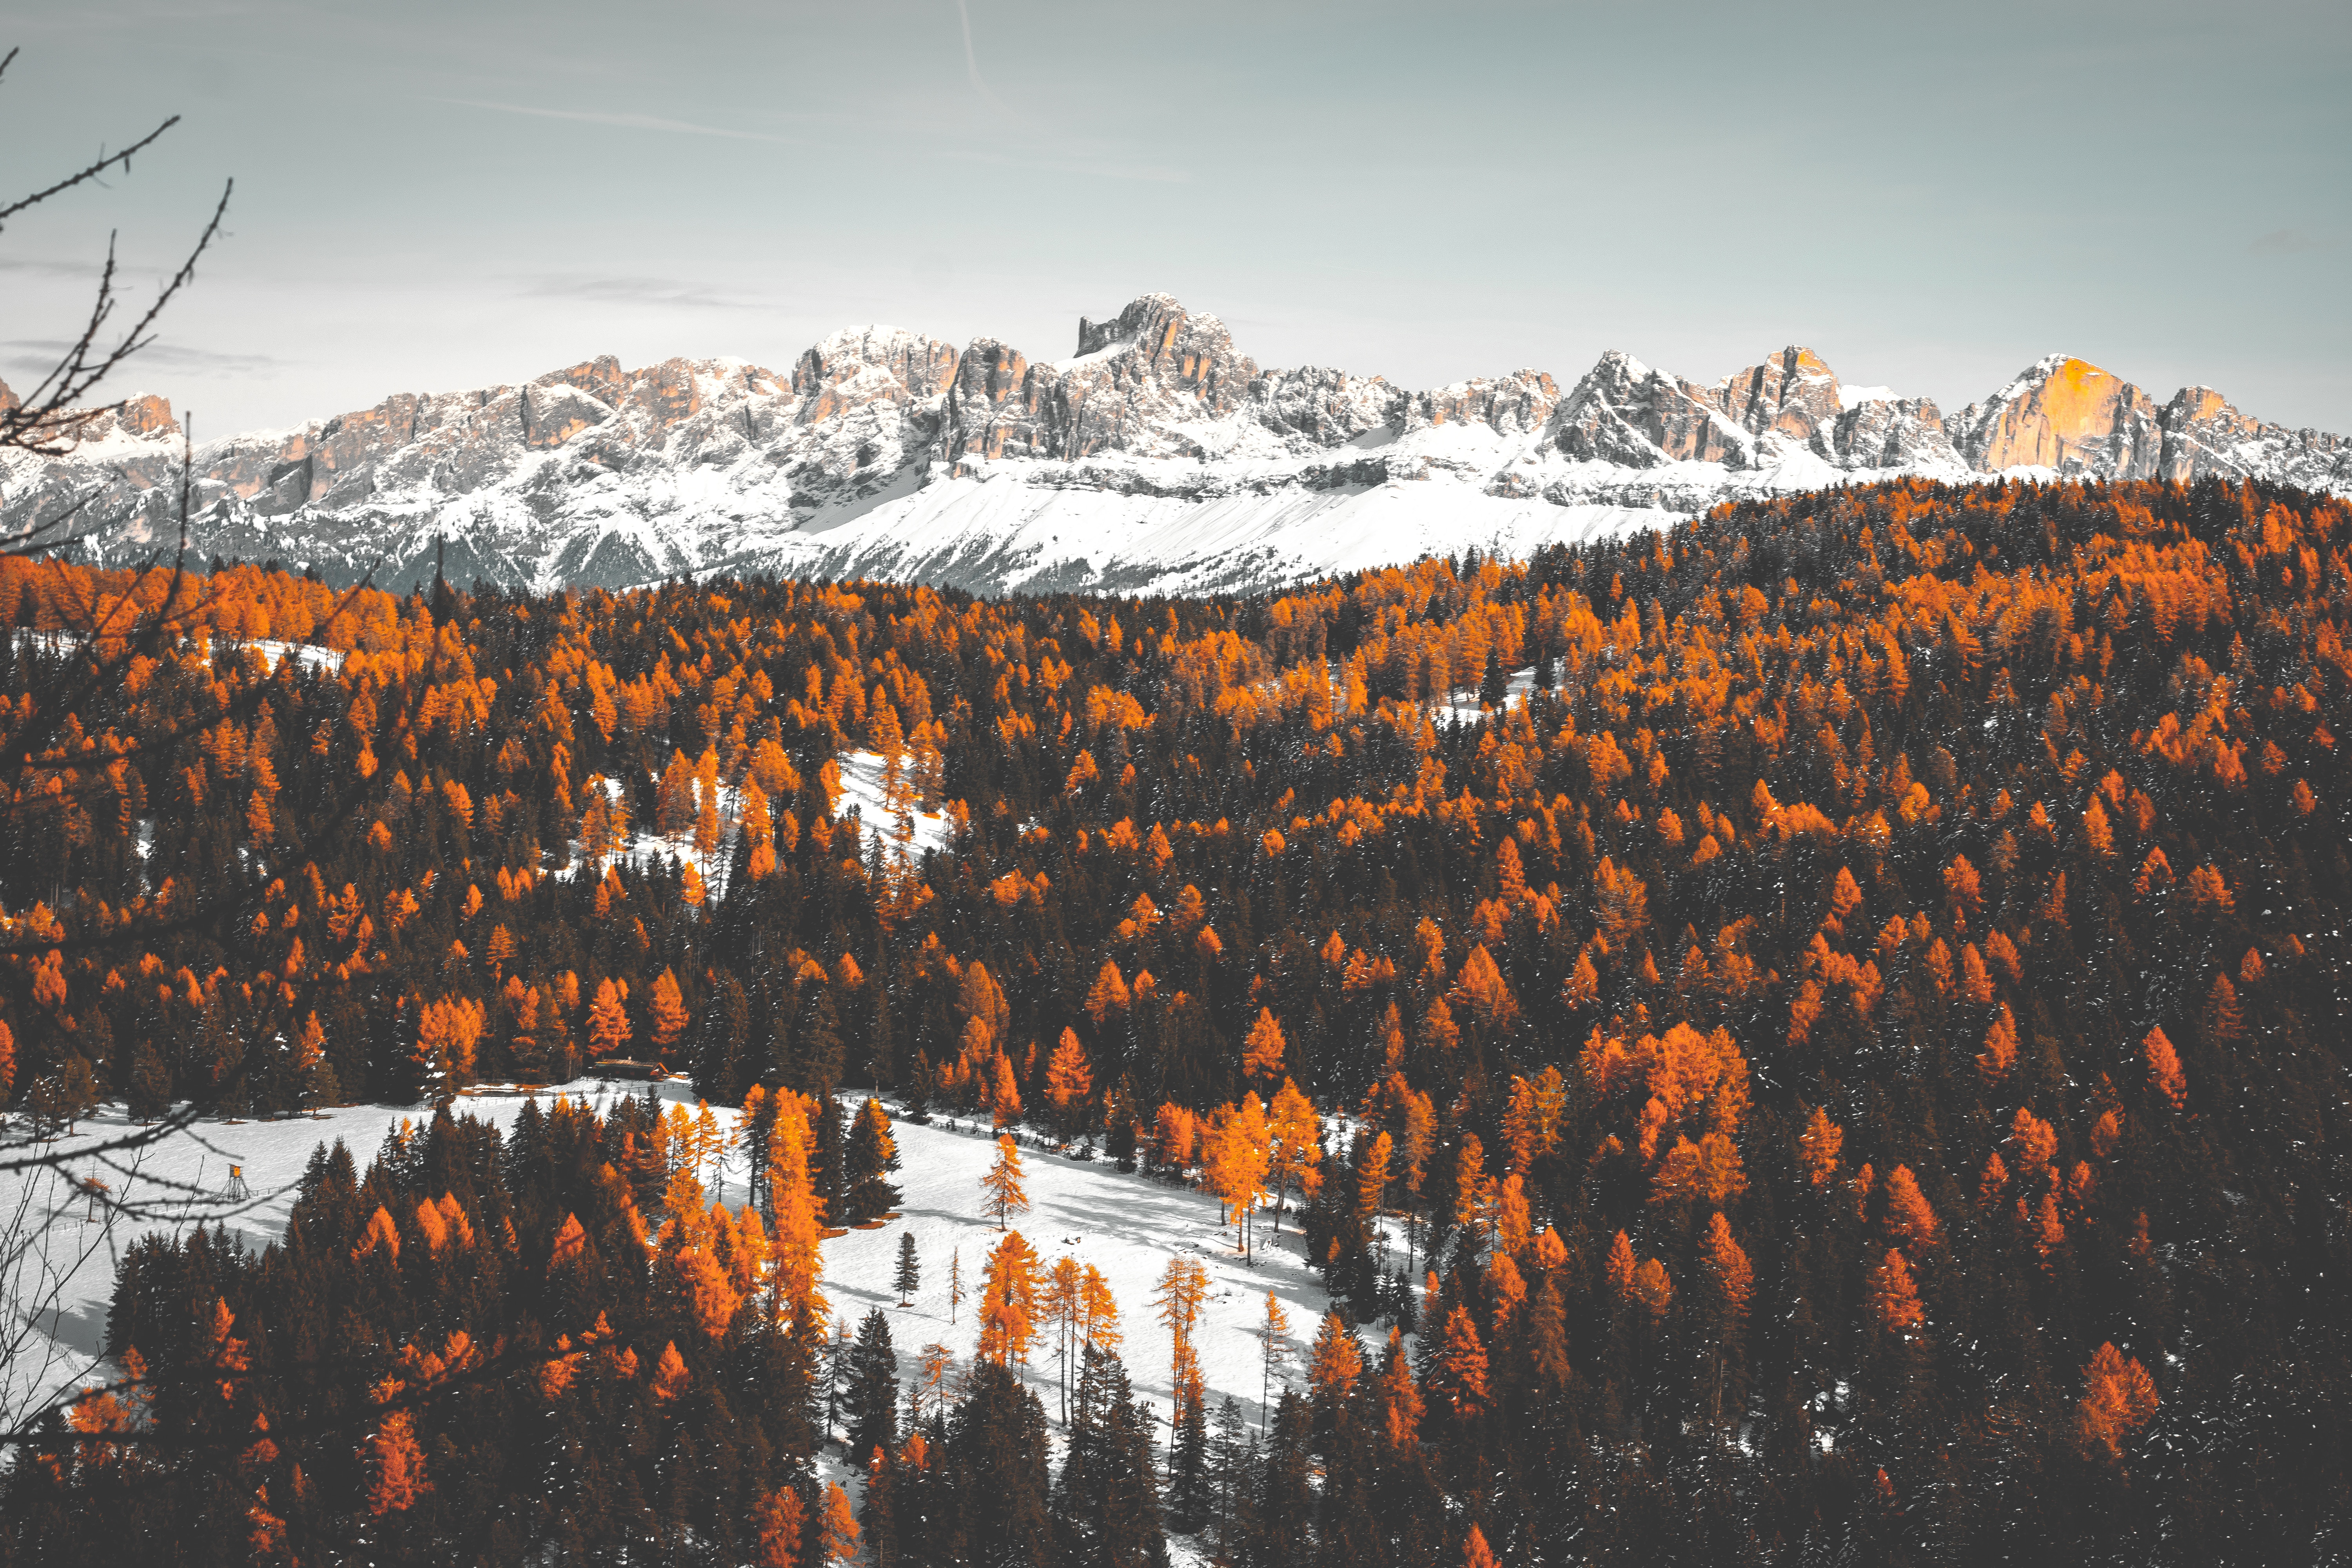 121403 download wallpaper Nature, Trees, Snow, Winter, Mountains screensavers and pictures for free